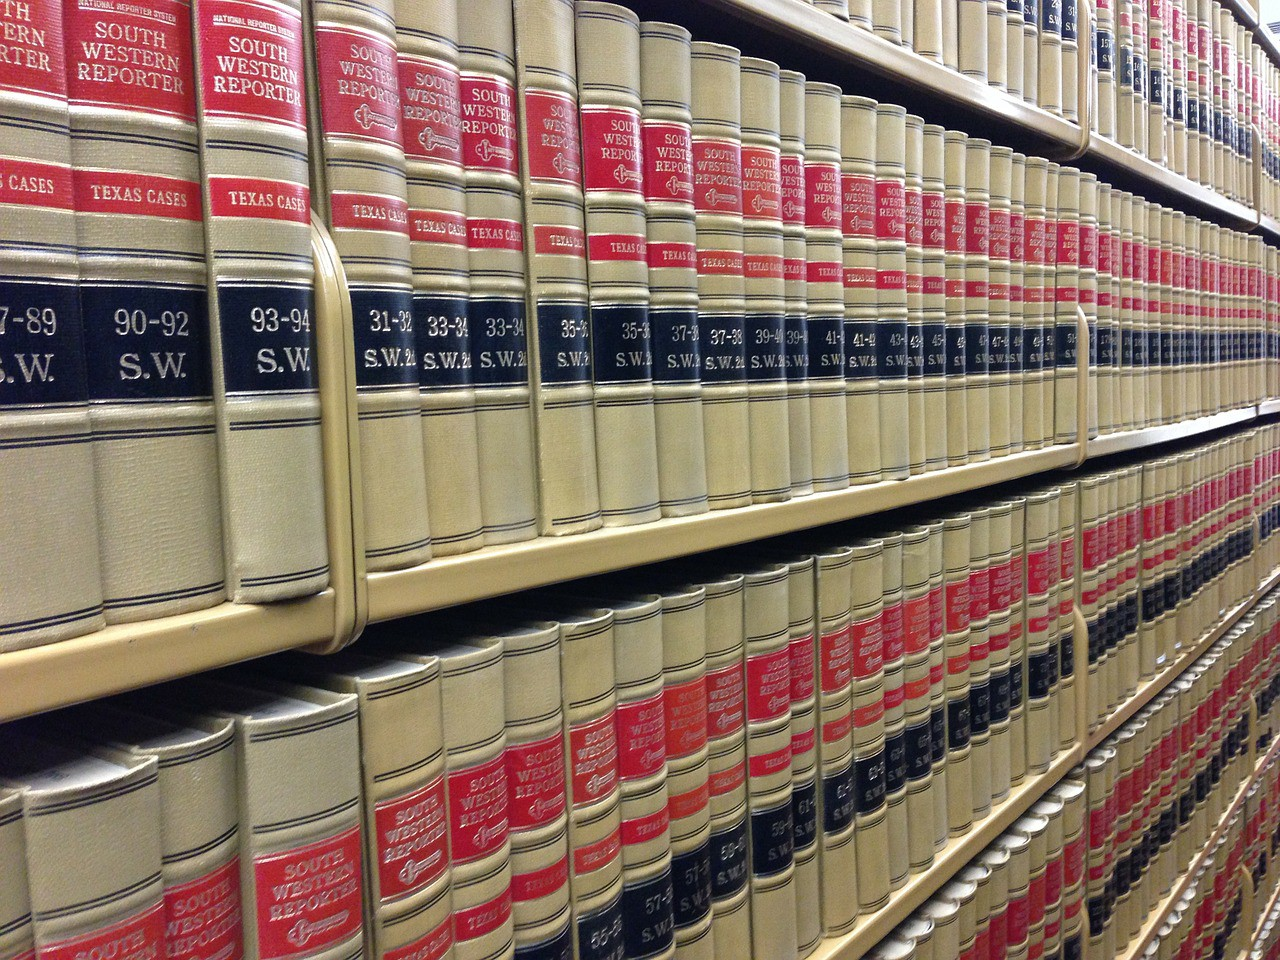 Volumes of law books in neat rows at legal library.